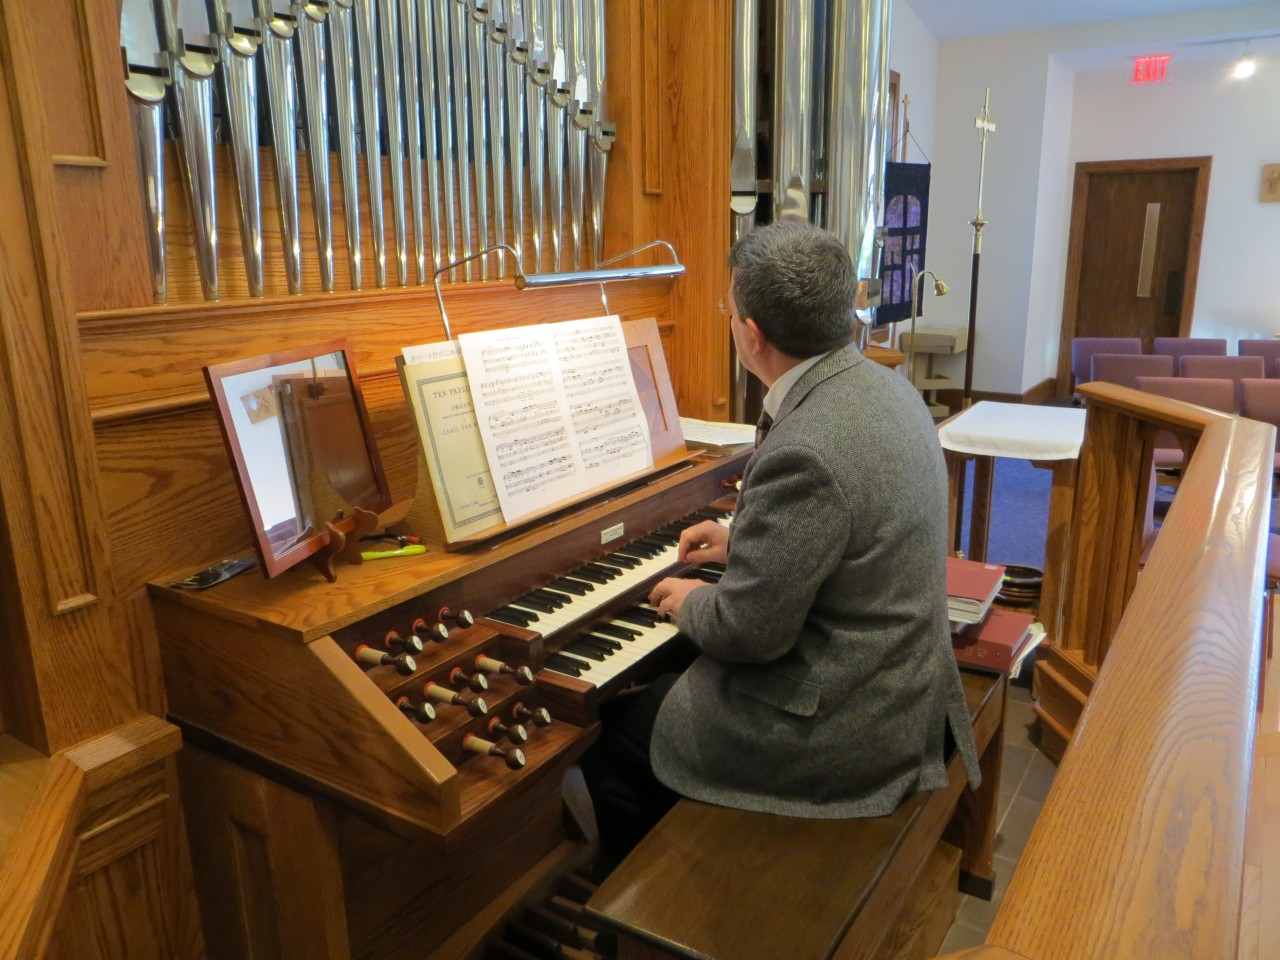 Organist Jason practices between services.